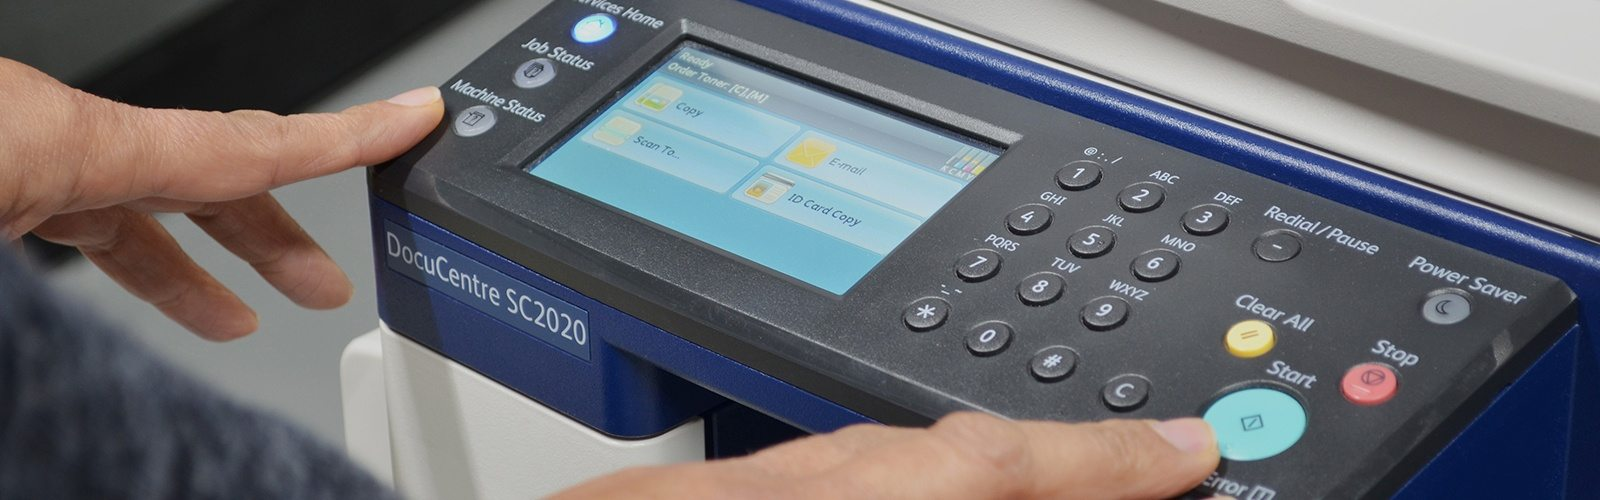 What You Need To Know About MPS And Controlling Printing Costs